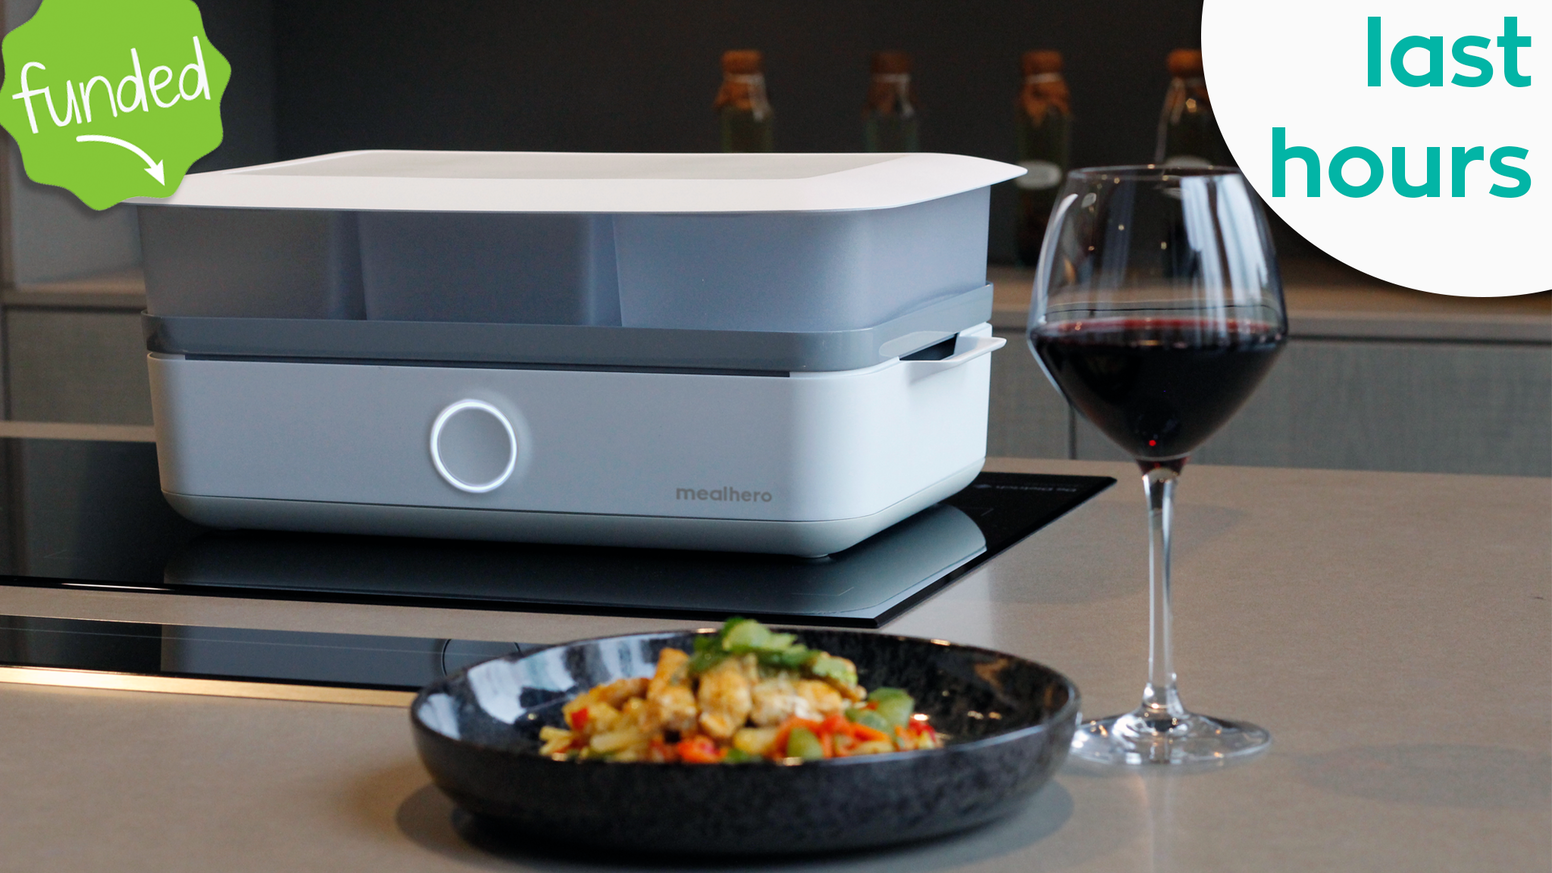 mealhero combines a smart steamer with home-delivered food boxes to prepare you a healthy and delicious meal with zero effort.